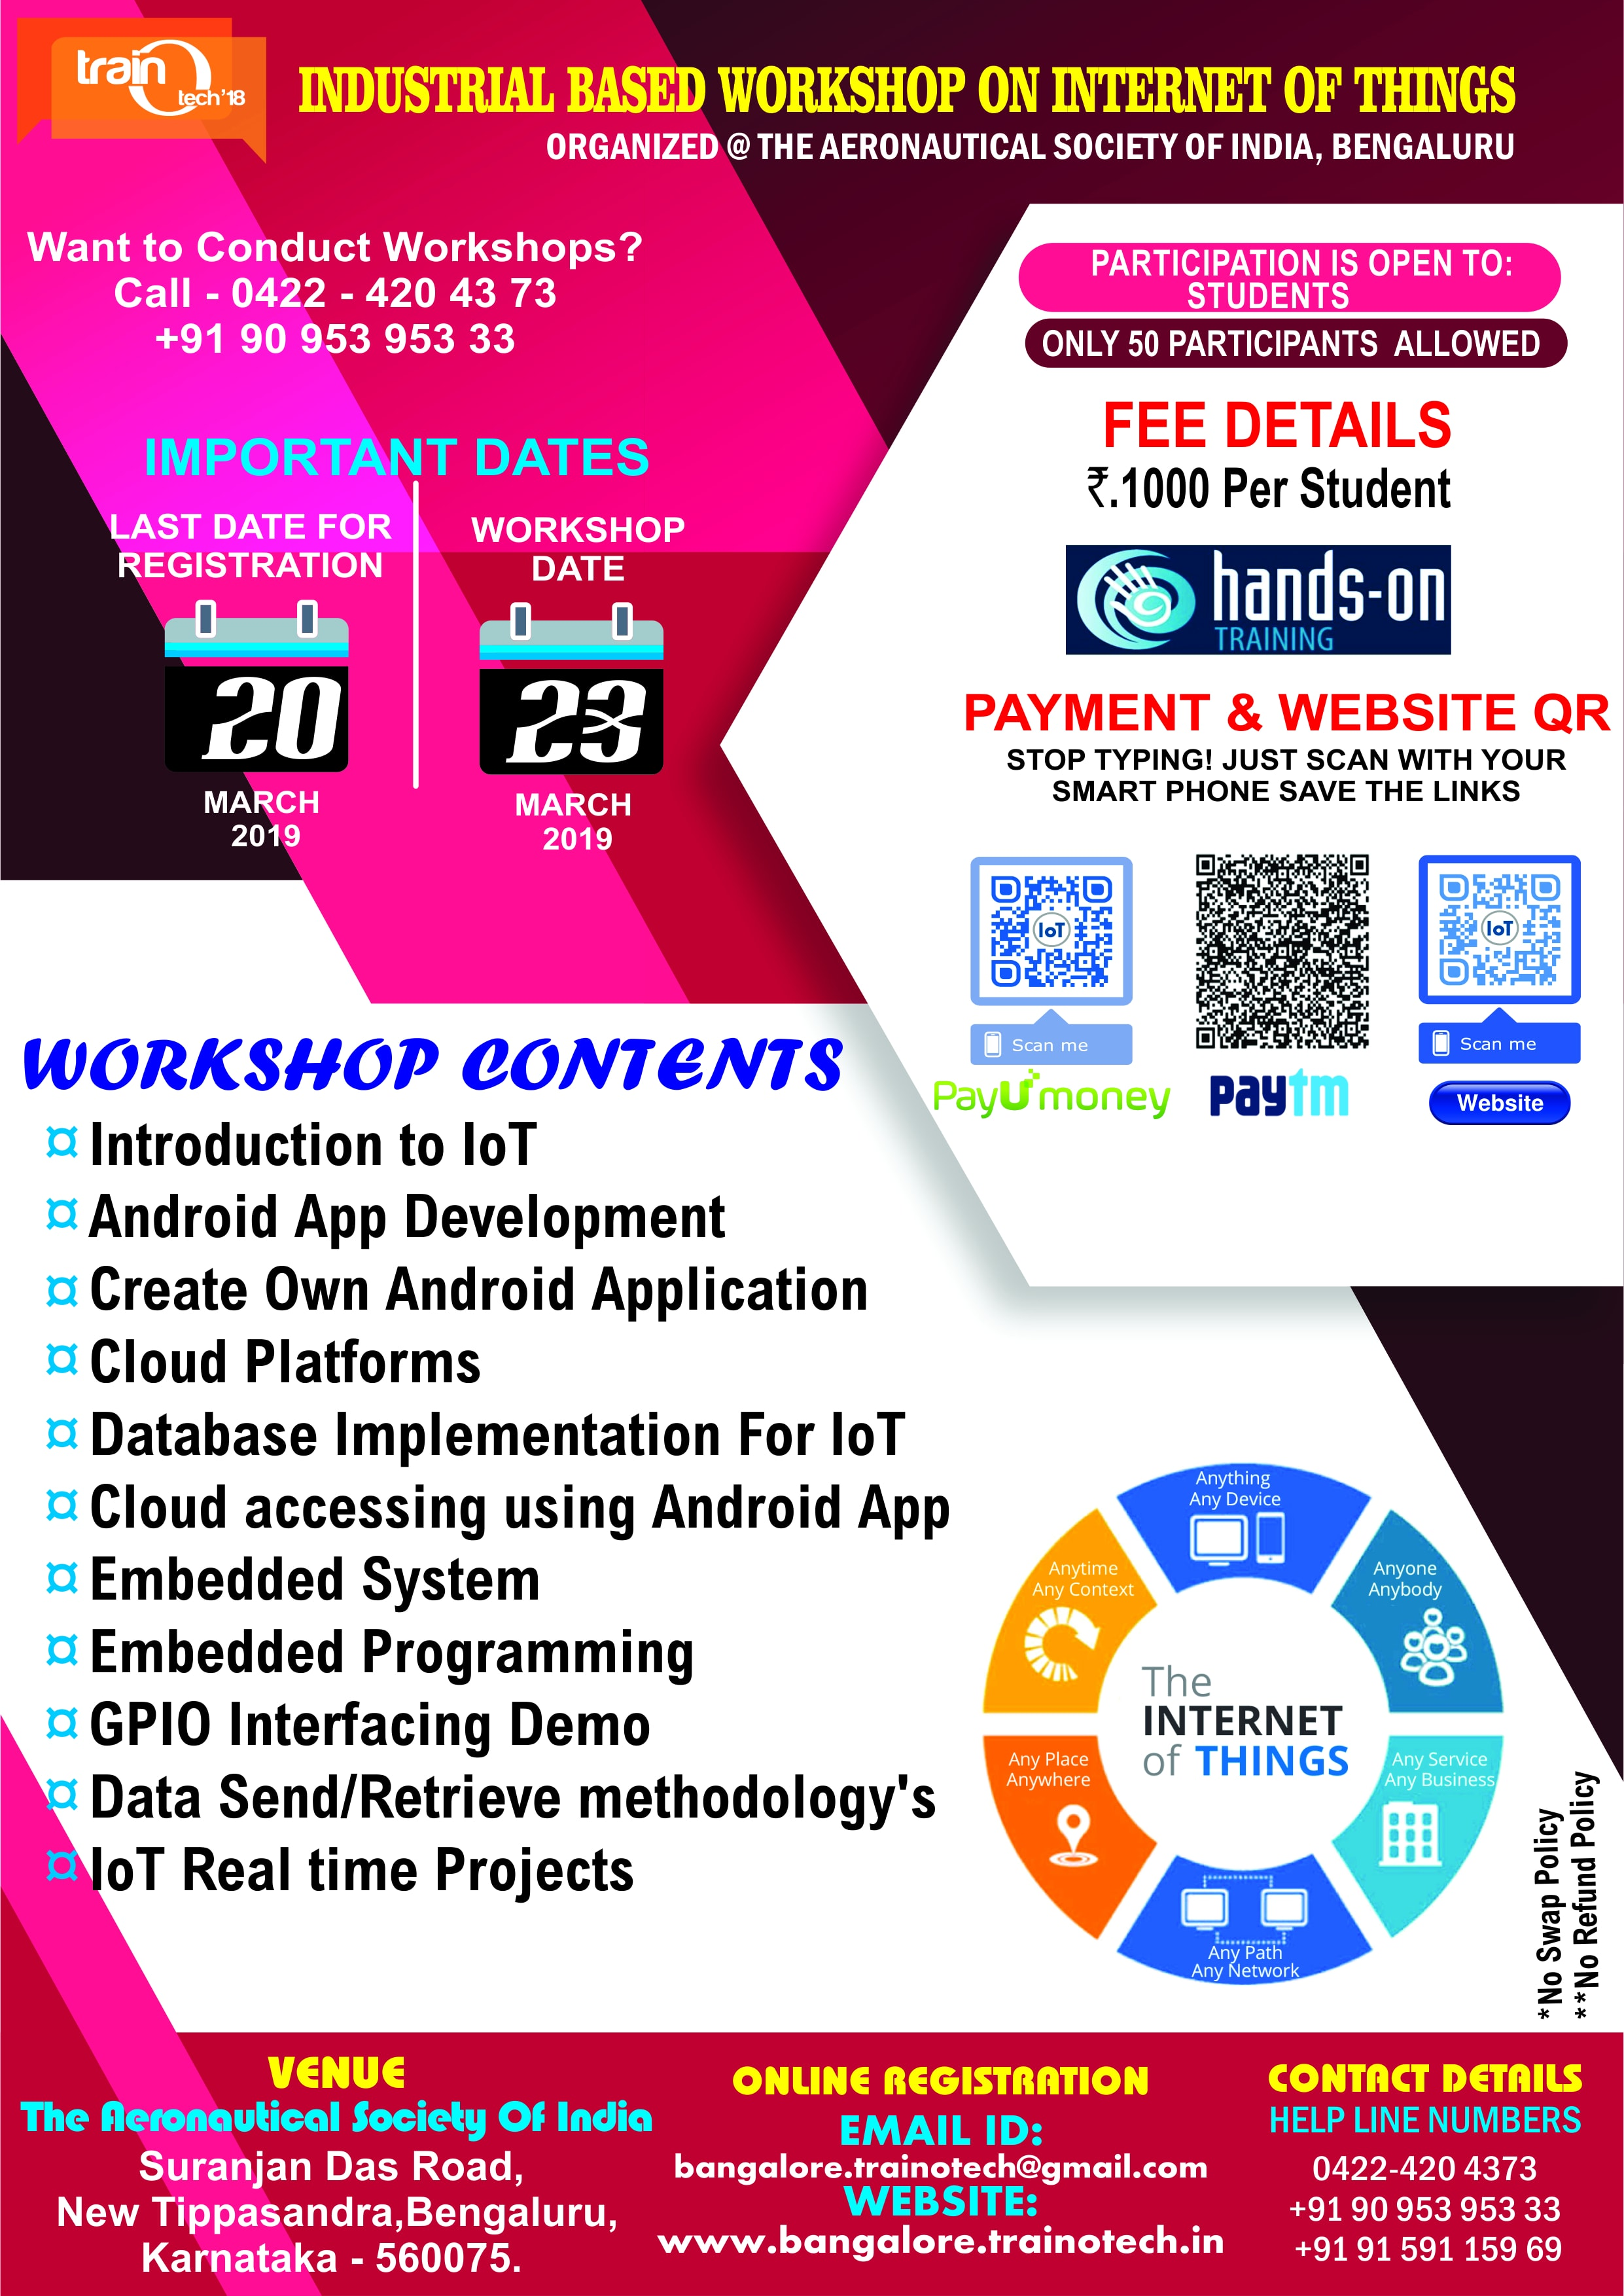 Industrial Based Workshop on Internet of Things 2019